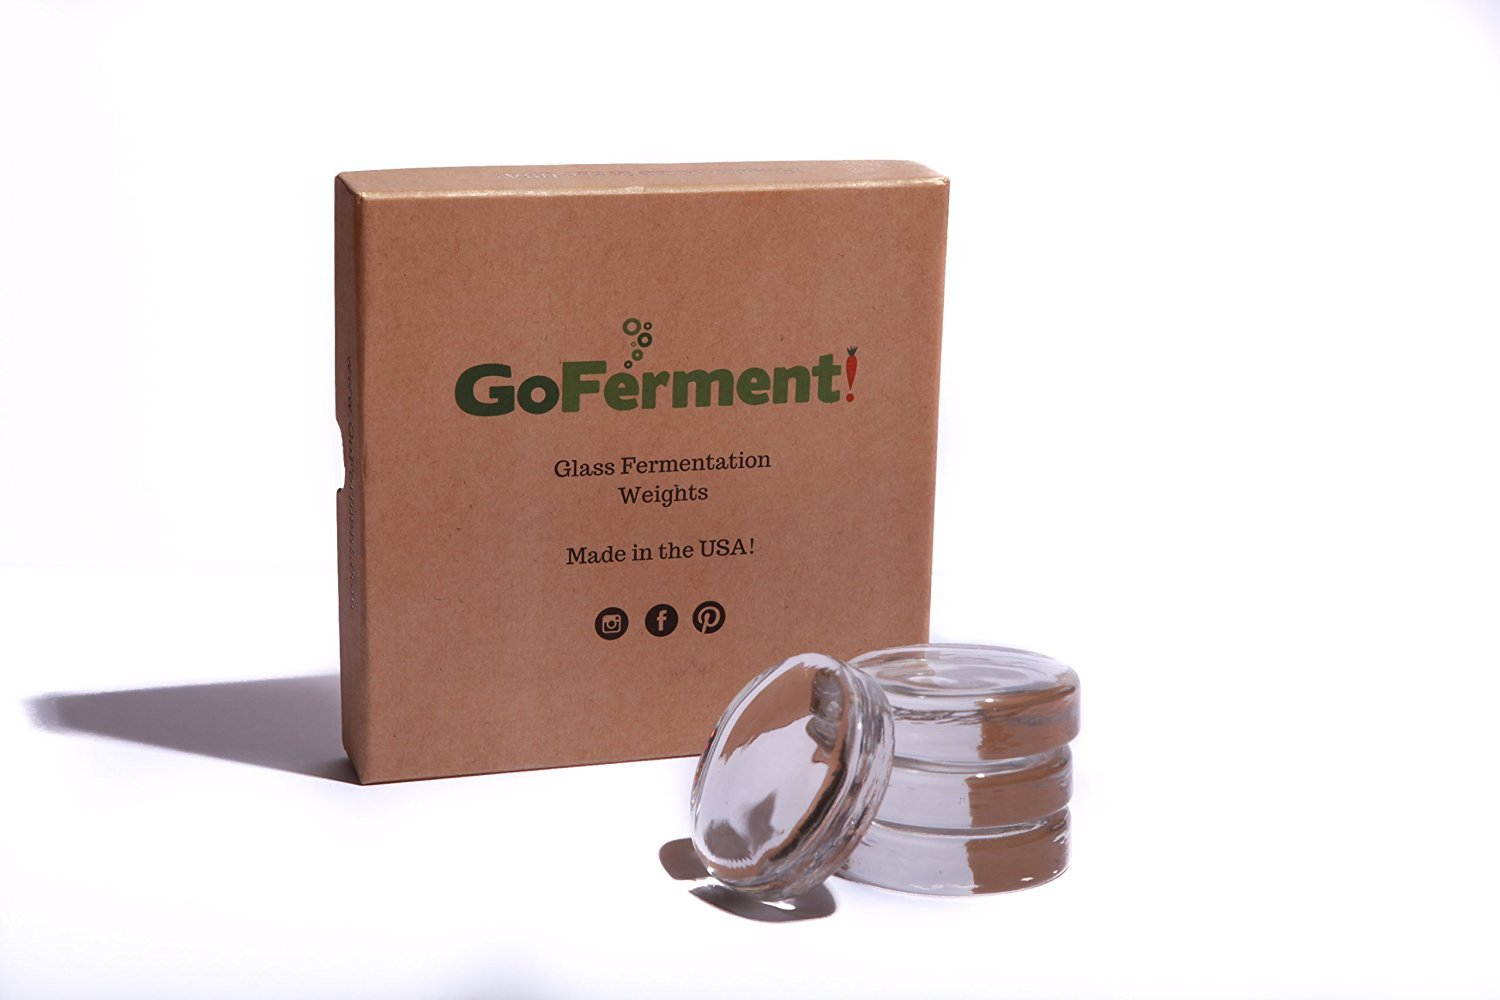 Go Ferment! Wide Mouth Mason Jar Glass Fermentation Weights & Recipe E-Book - Made in the USA (Pack of 4) by Go Ferment! (Image #2)